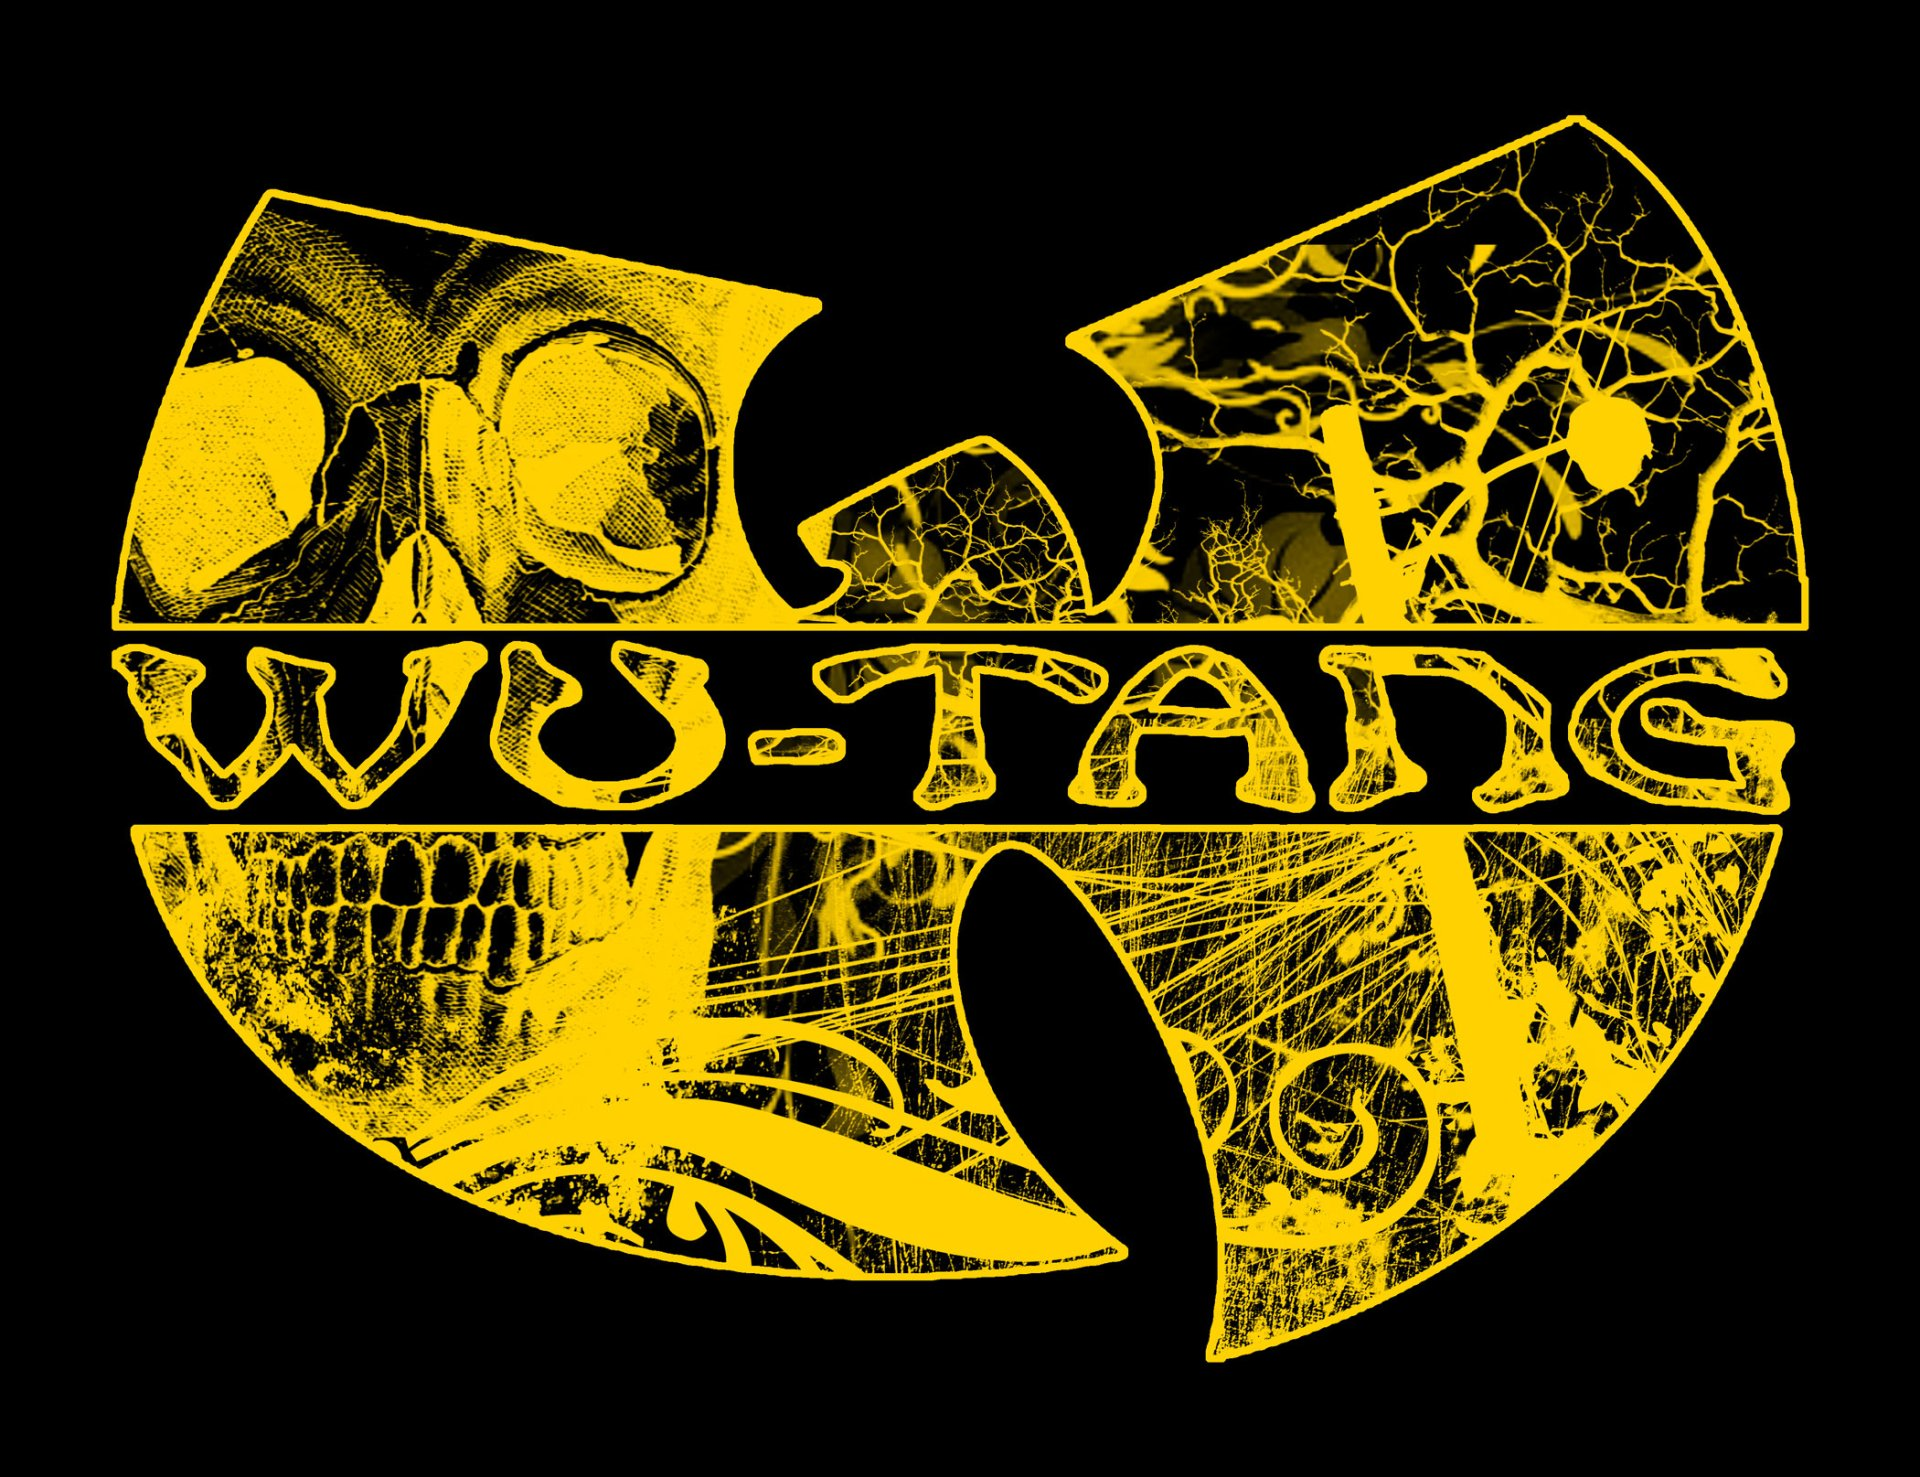 Wu Tang Iphone Wallpaper Wu Tang Clan Full Hd Fondo De Pantalla And Fondo De